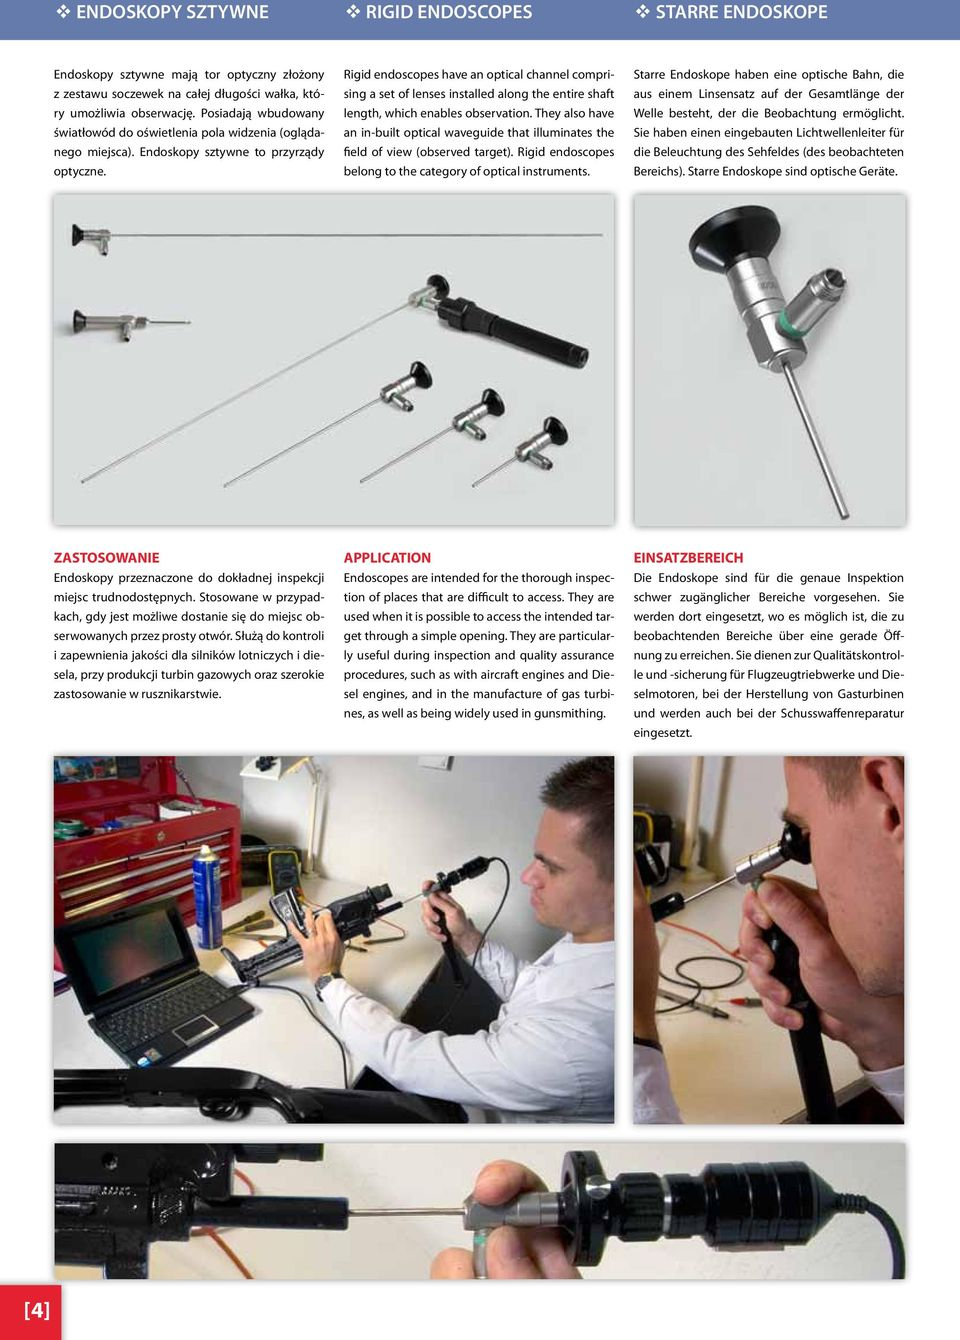 Rigid endoscopes have an optical channel comprising a set of lenses installed along the entire shaft length, which enables observation.